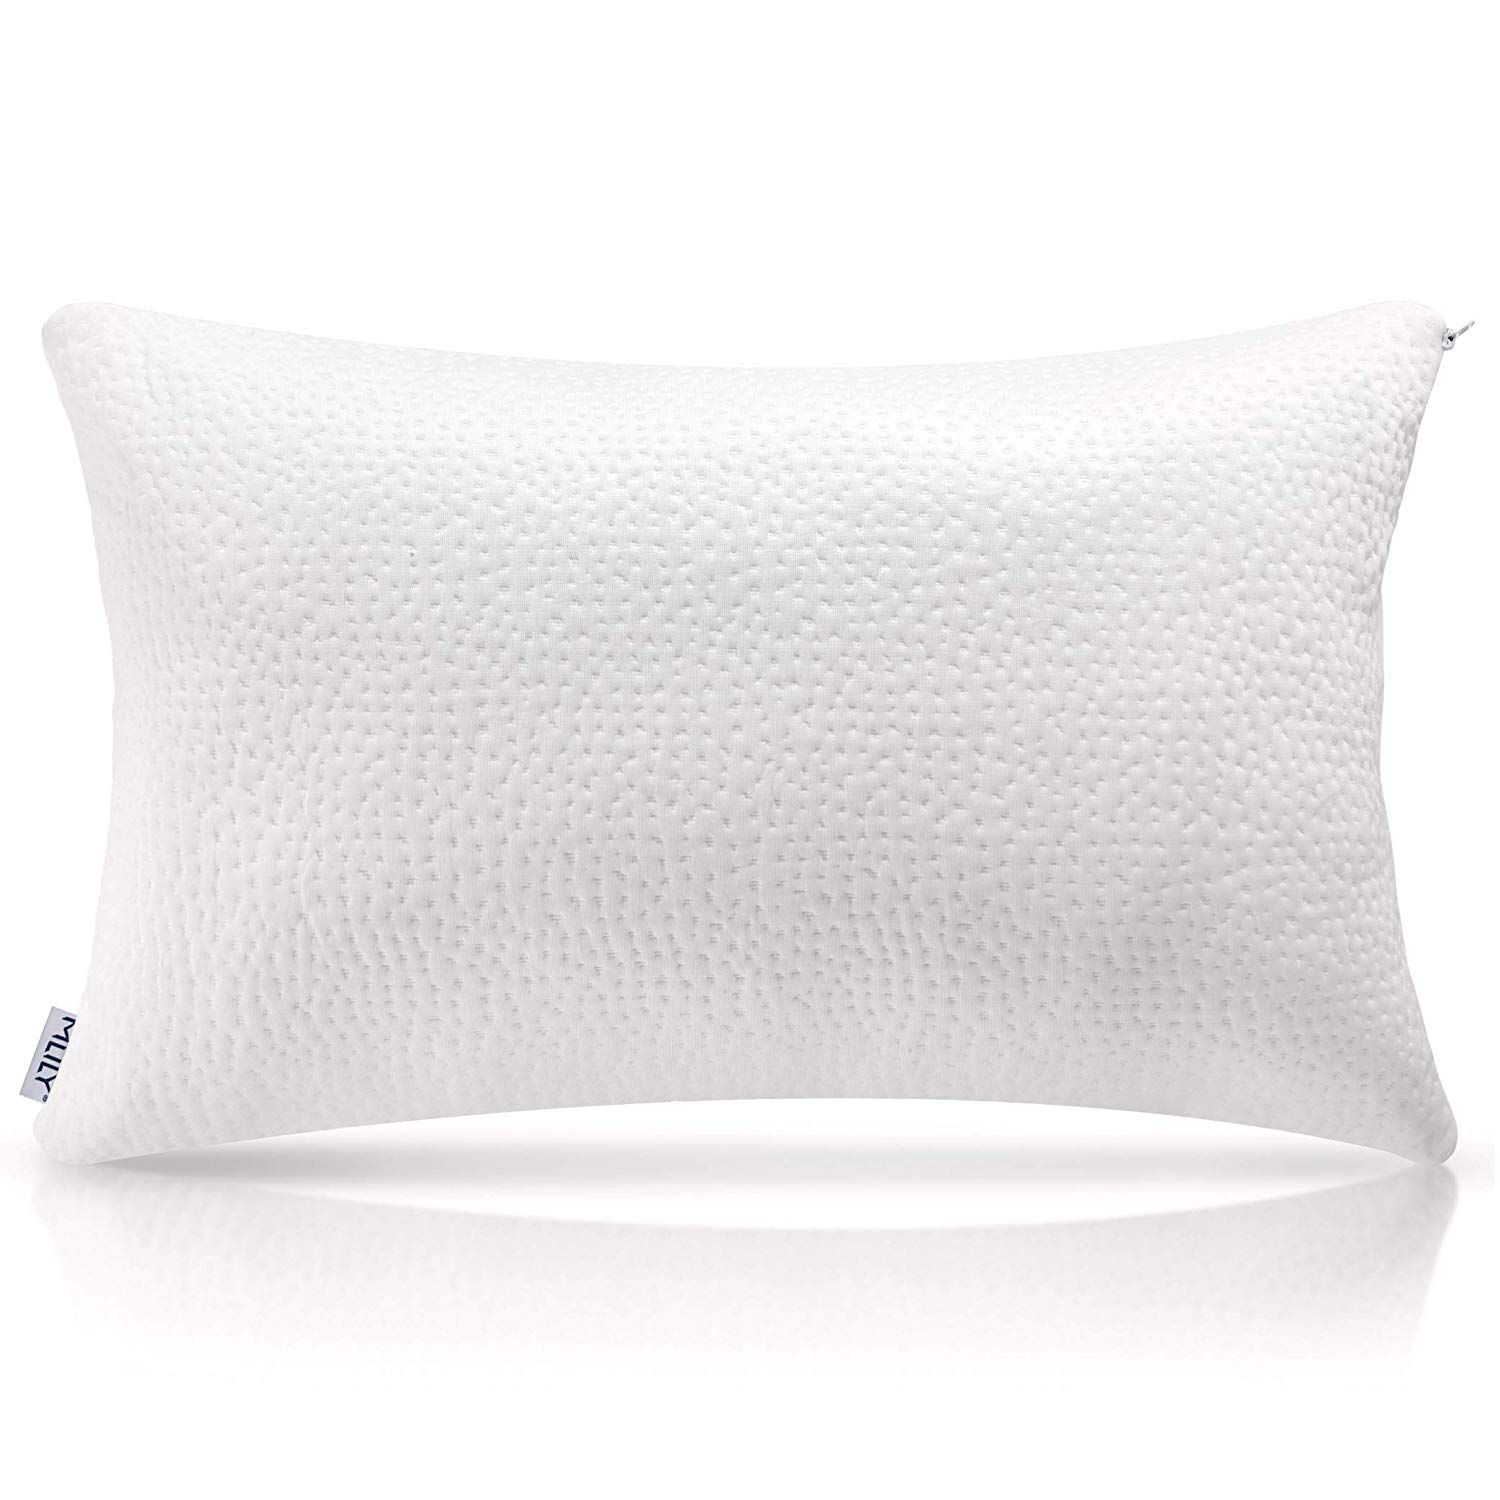 Top 5 Best Pillow Cases In 2020 Complete Guide Foam Pillows Bed Pillows Memory Foam Pillow